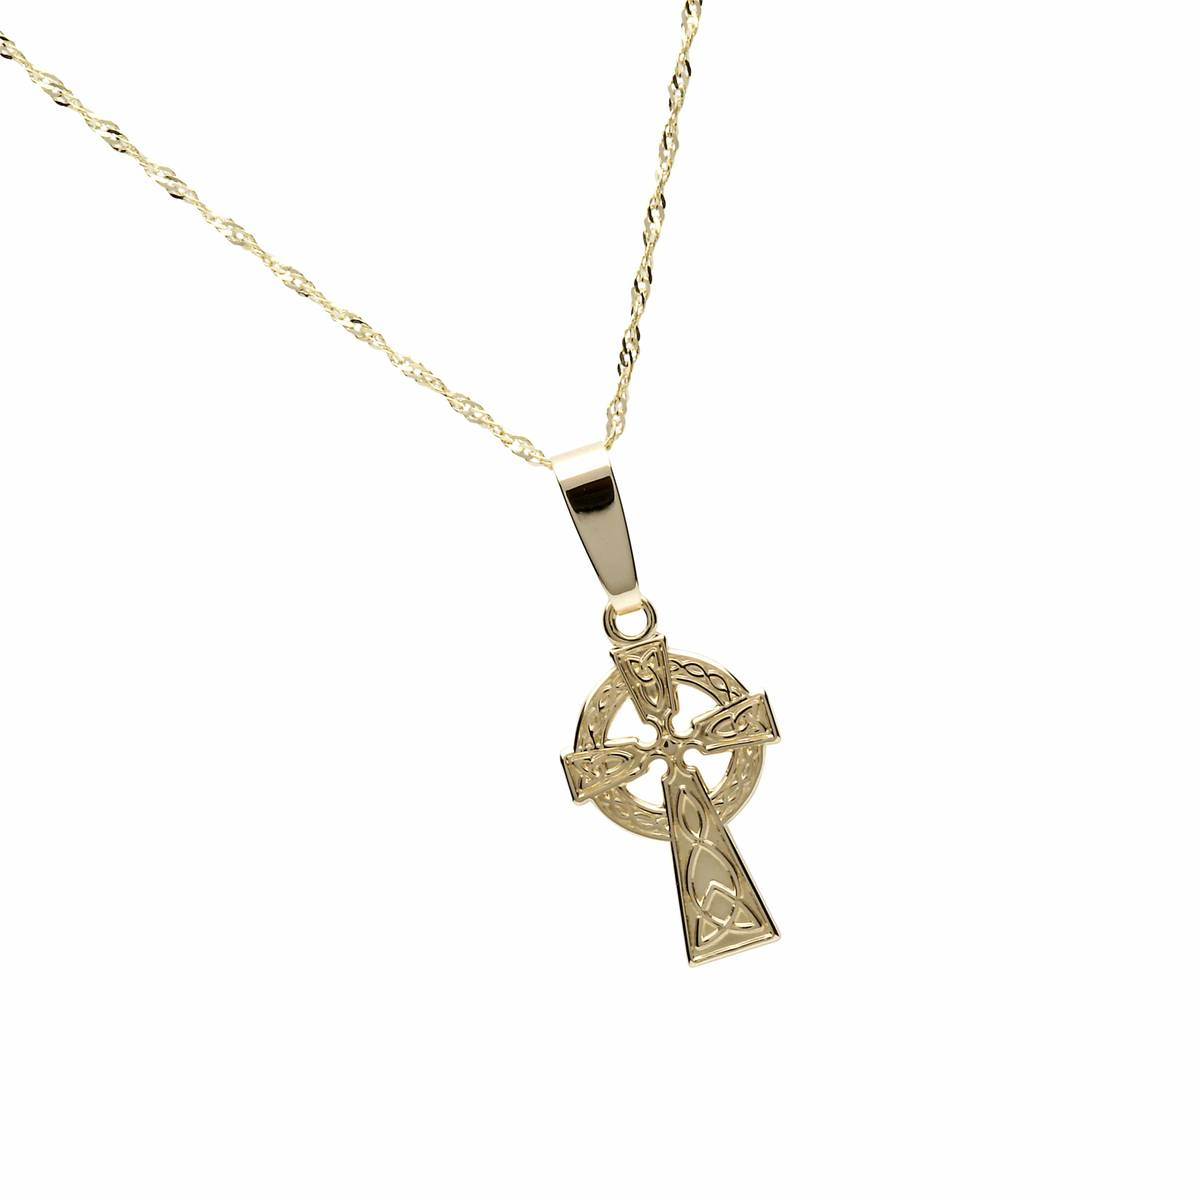 10 carat yellow gold classic Celtic cross